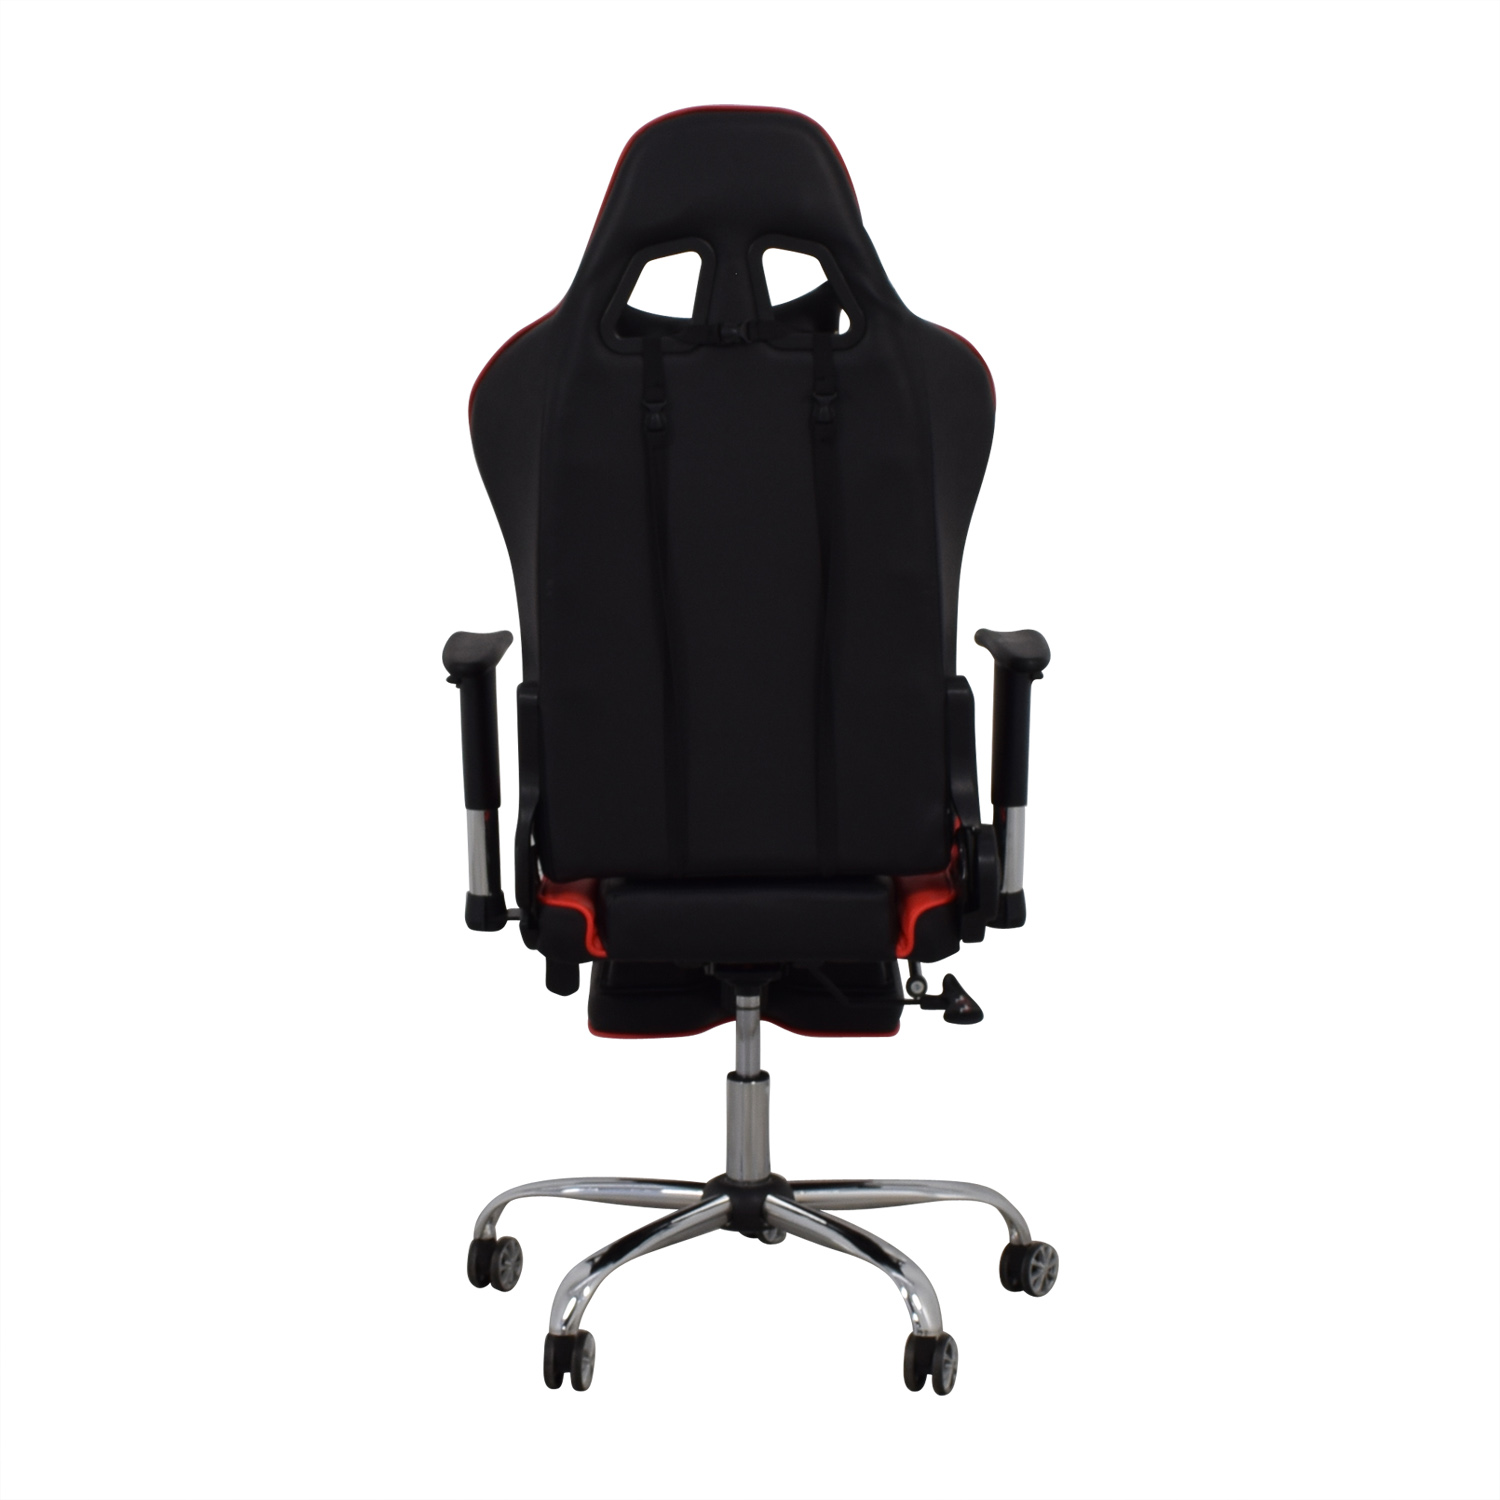 Merax Merax Black and Red Recliner Gaming Chair with Footrest for sale